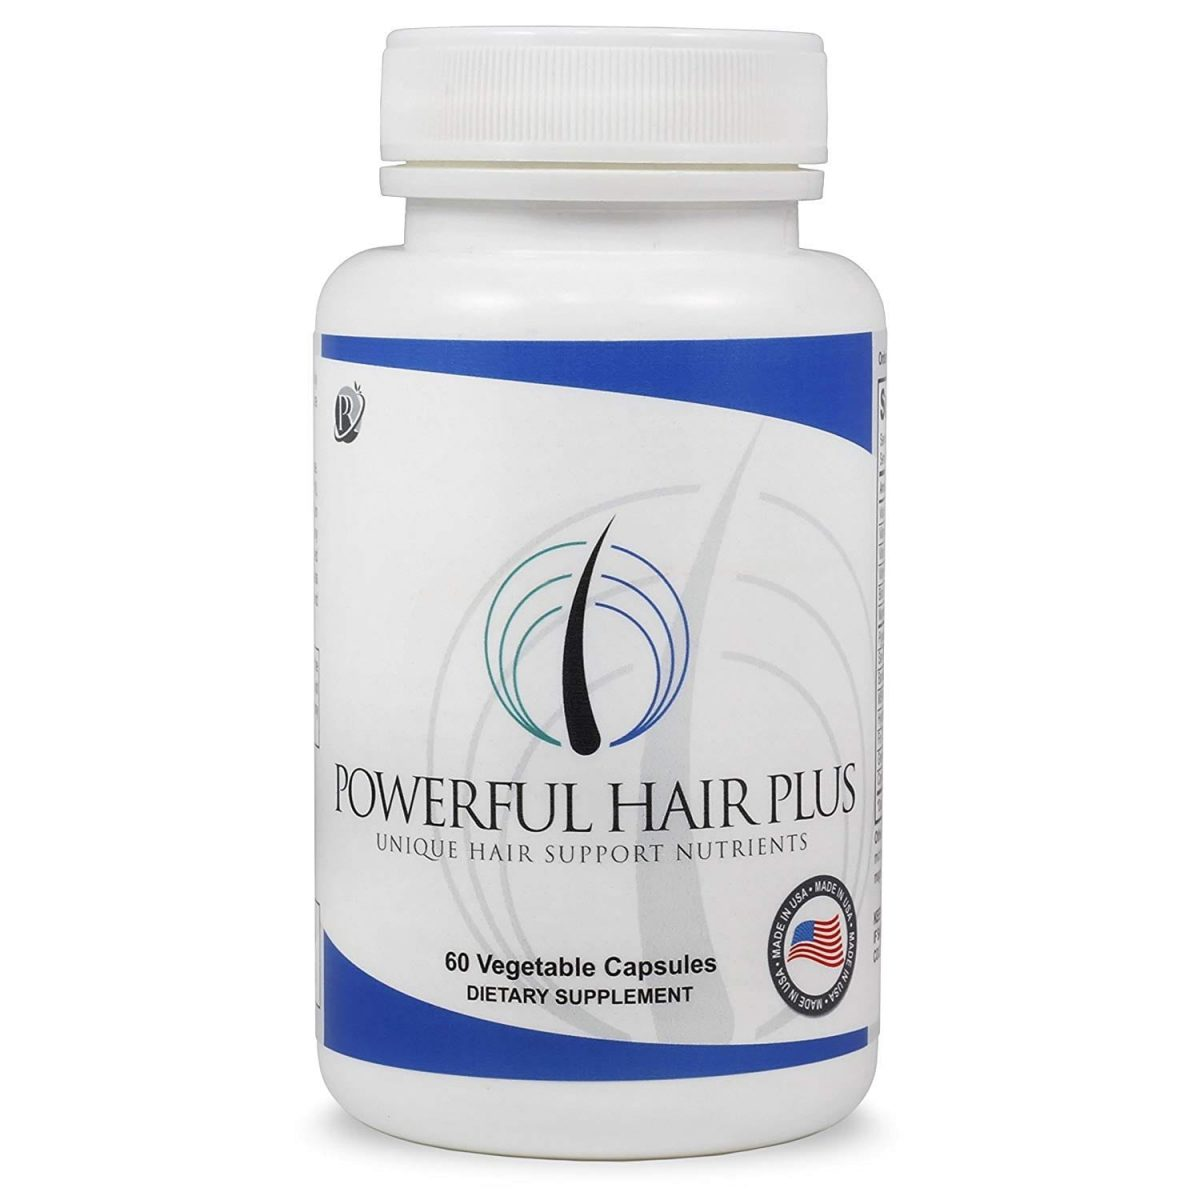 Powerful Hair Plus Product Image